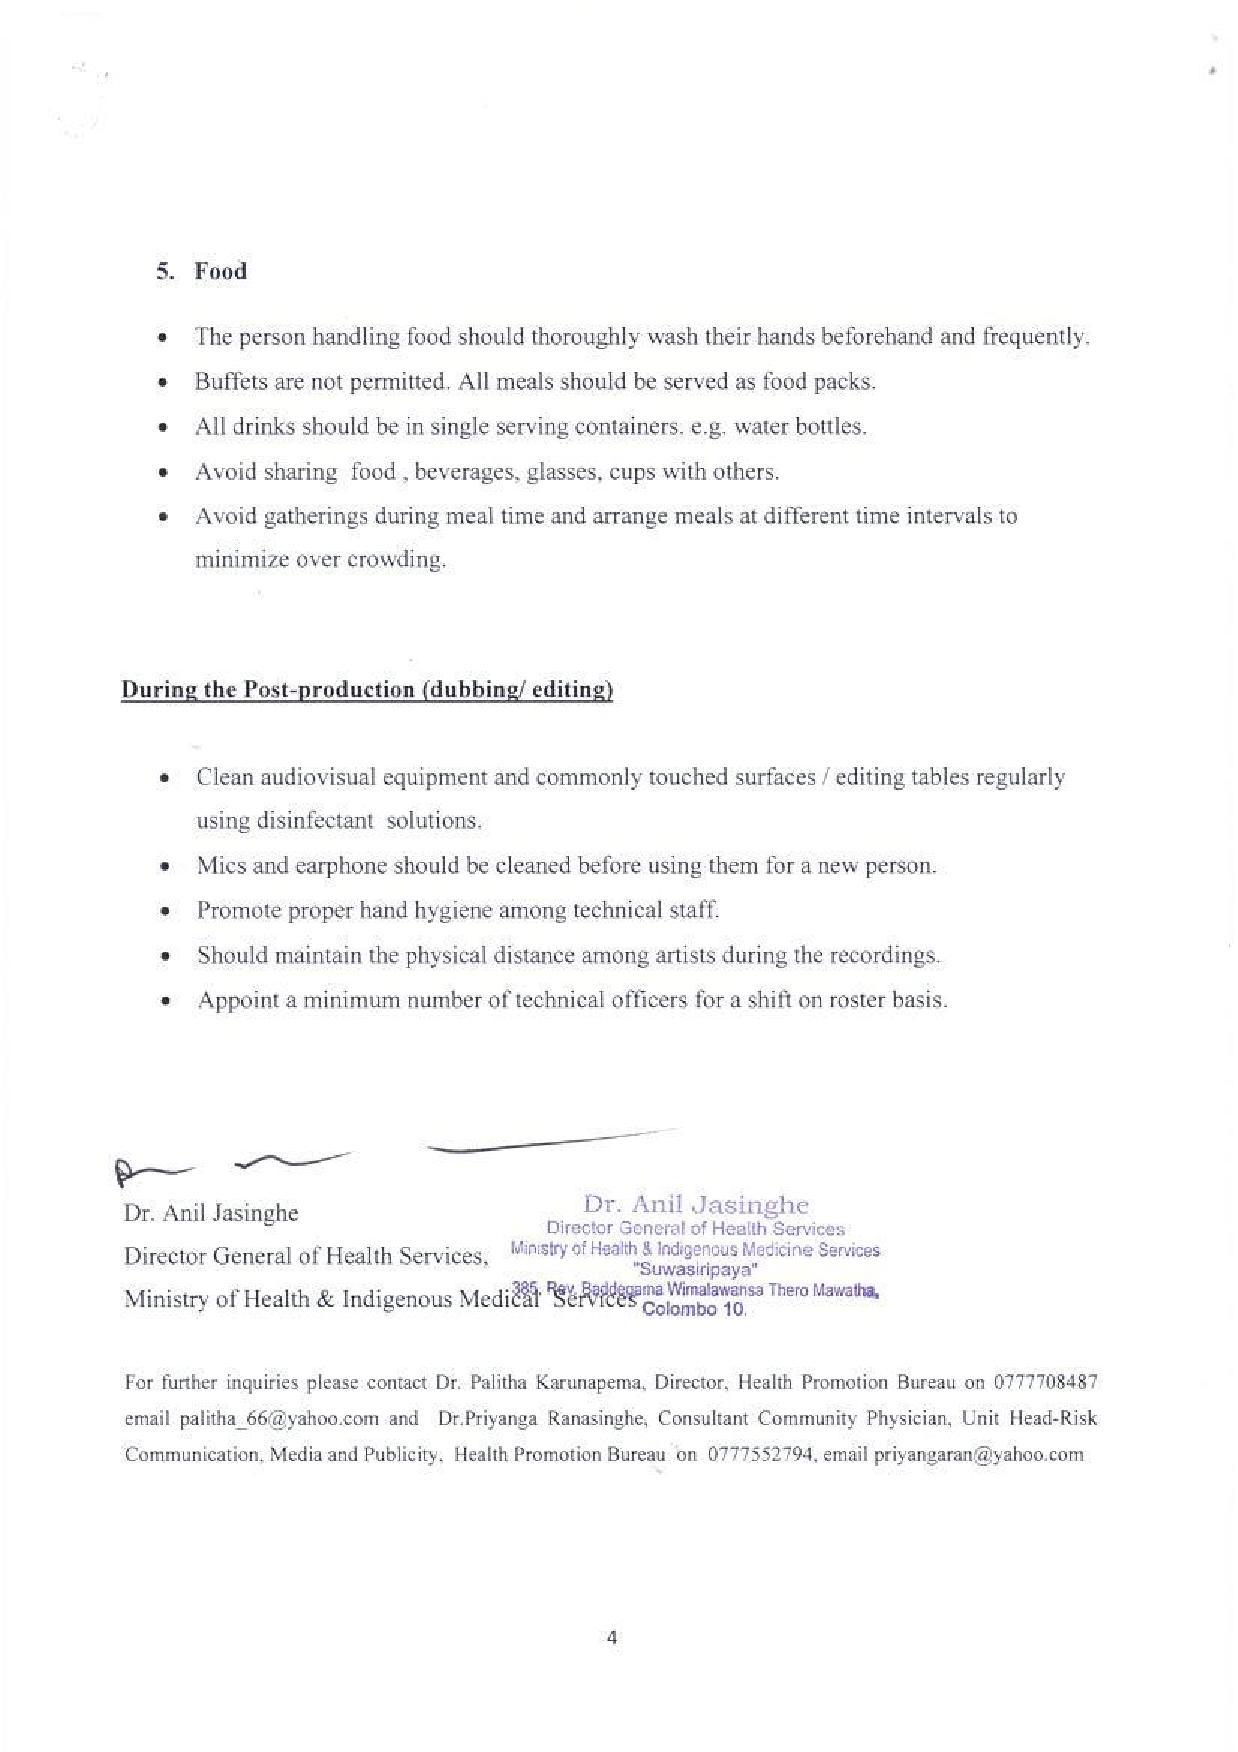 Guideline for Film and Teledrama Industry page 006